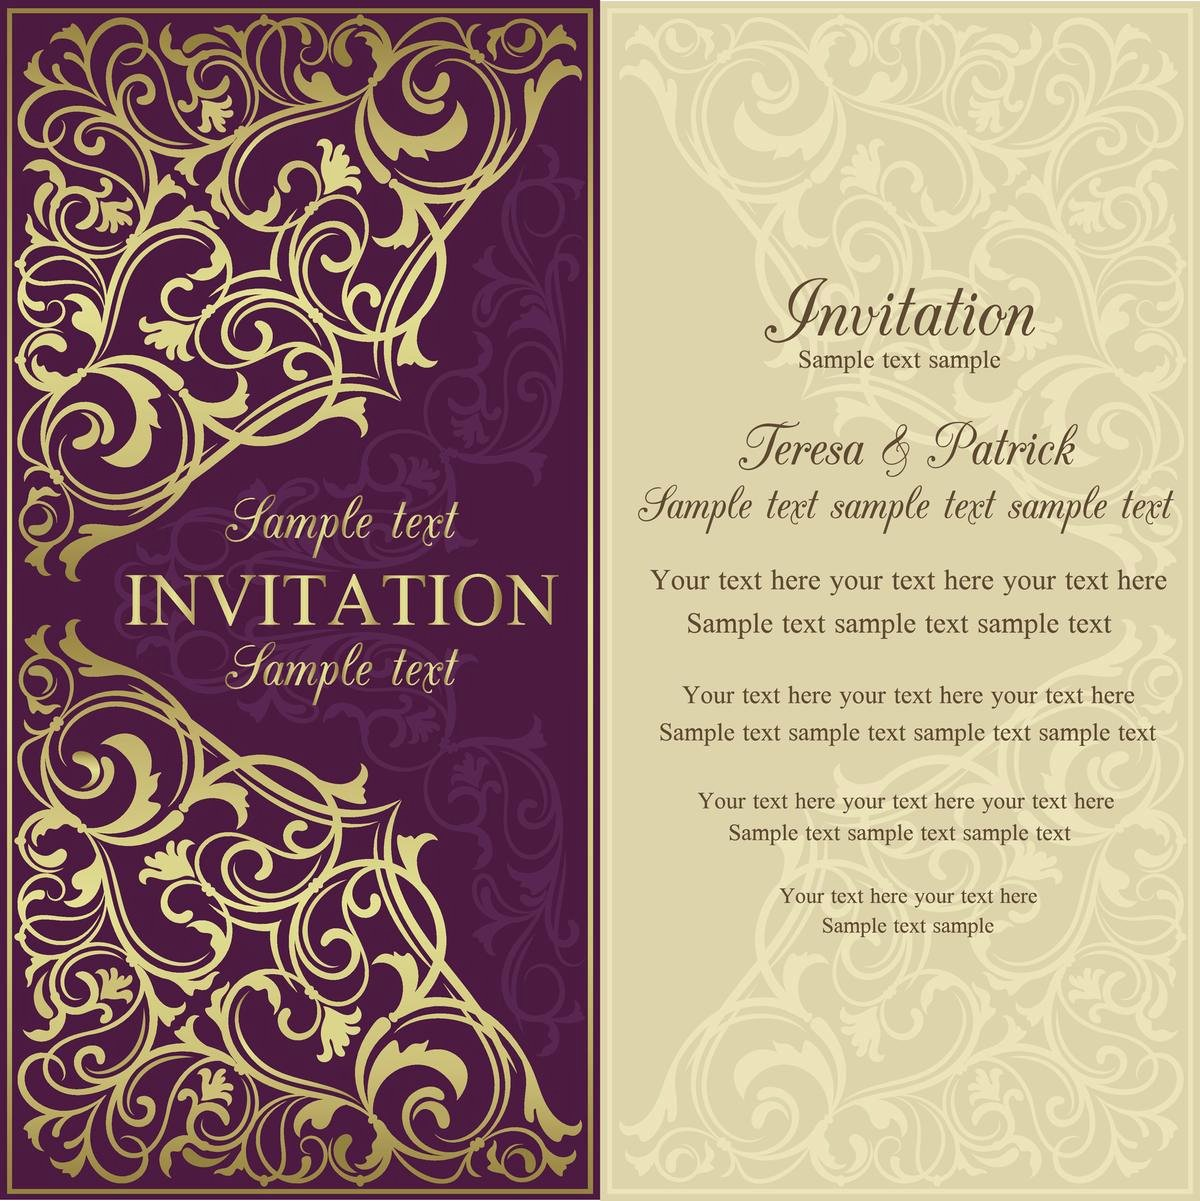 Samples Of Invitation Letters Unique Invitation Letter Sample